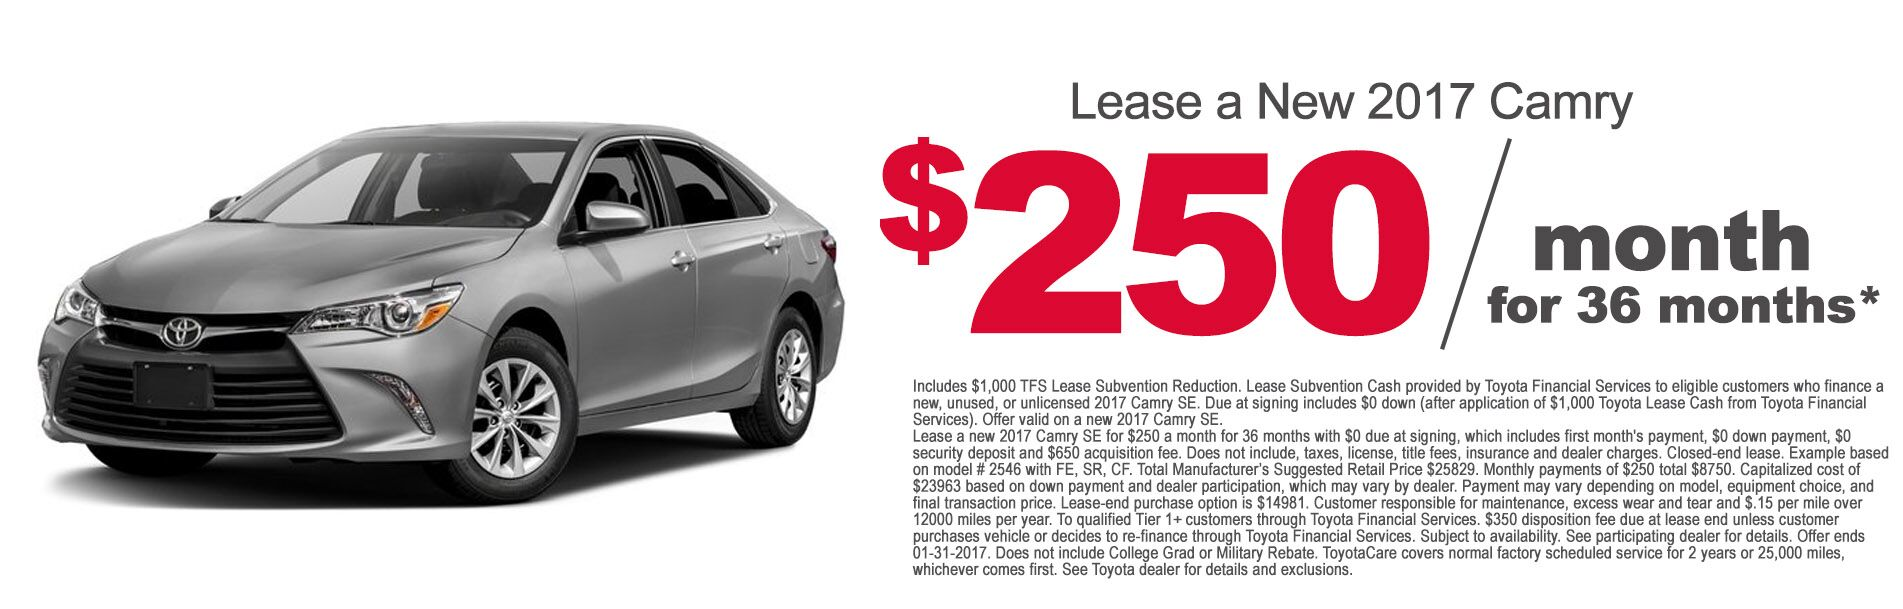 2017 Camry Lease Deal at Rochester Toyota